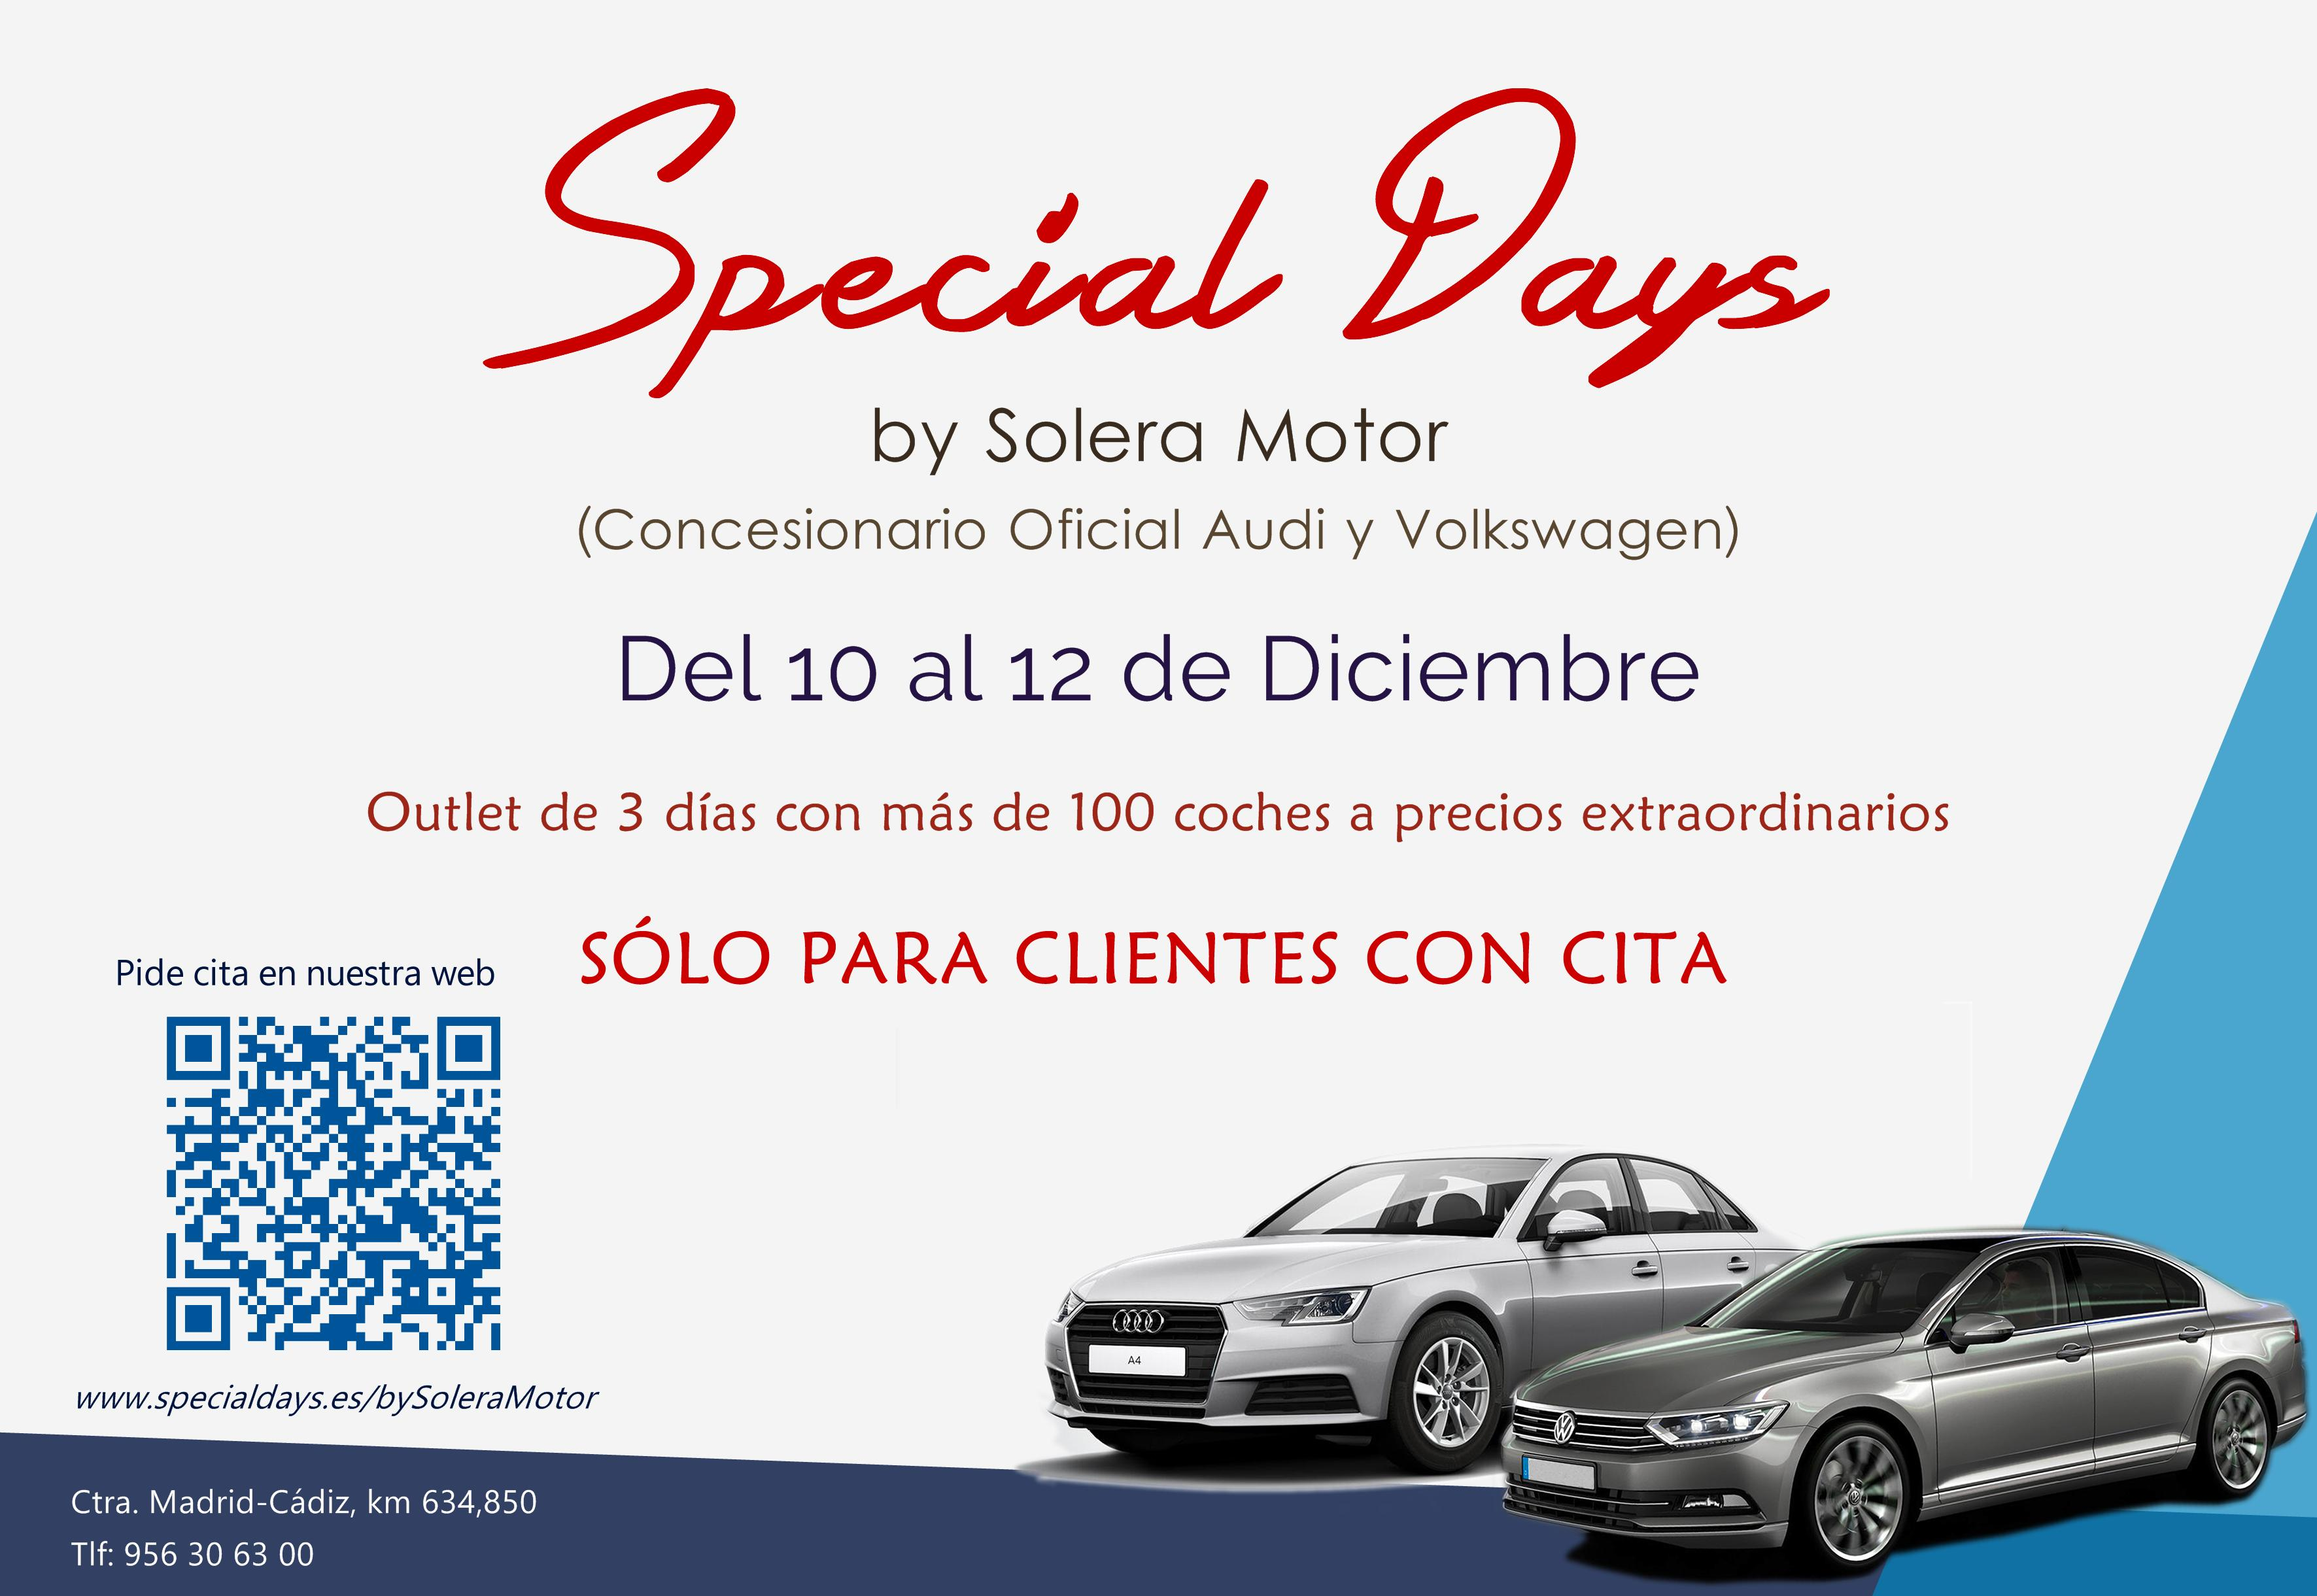 Special days by Solera Motor